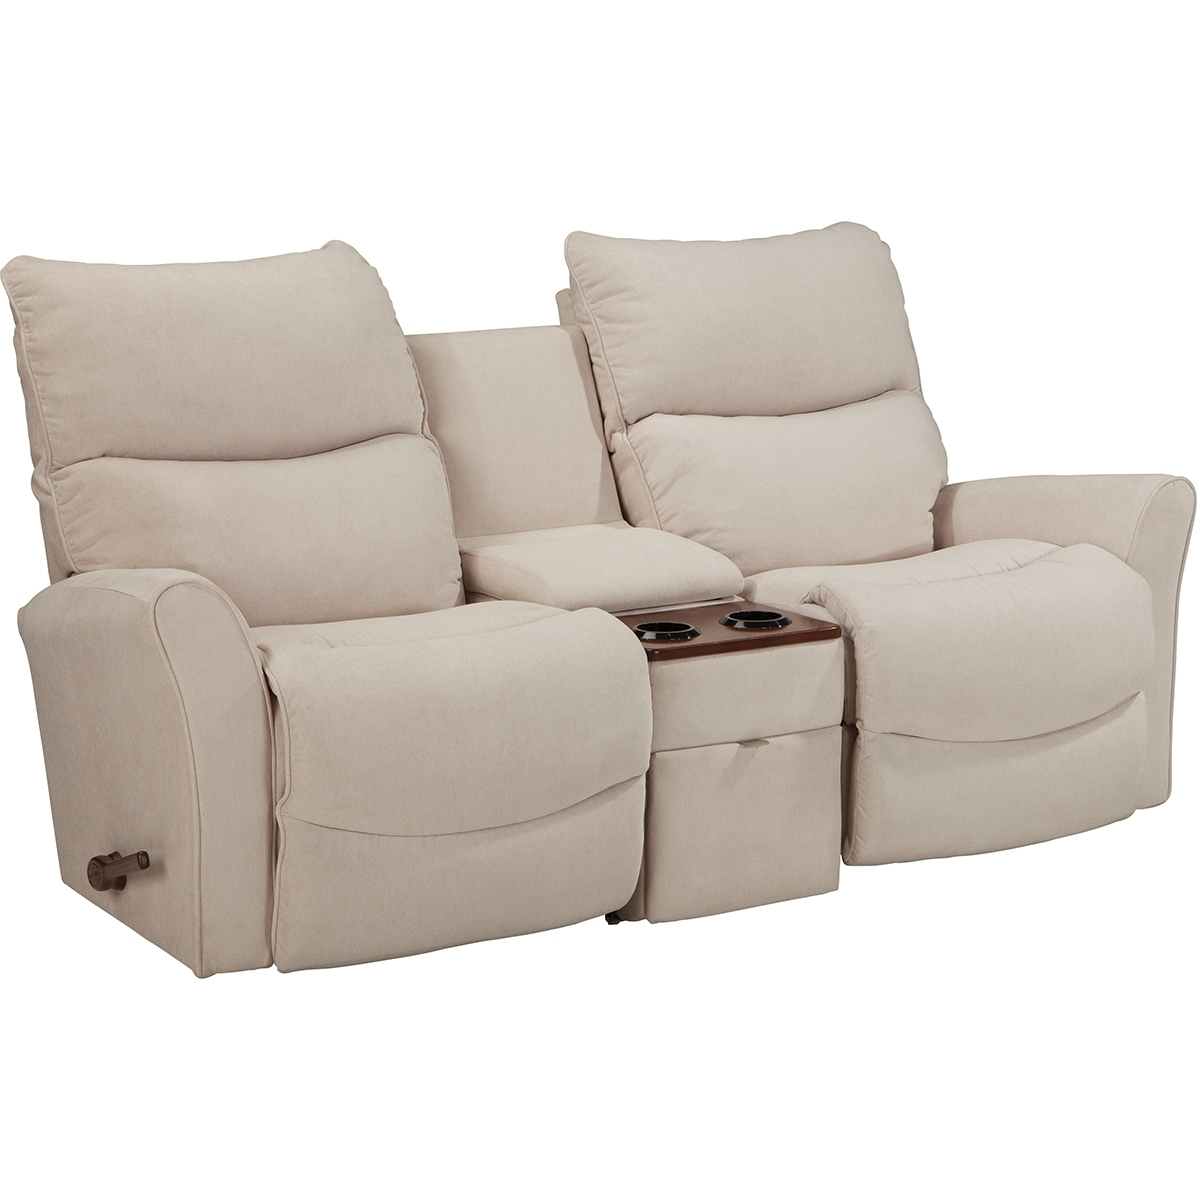 Sectional Sofas & Sectional Couches | La Z Boy Pertaining To La Z Boy Sectional Sofas (View 4 of 10)